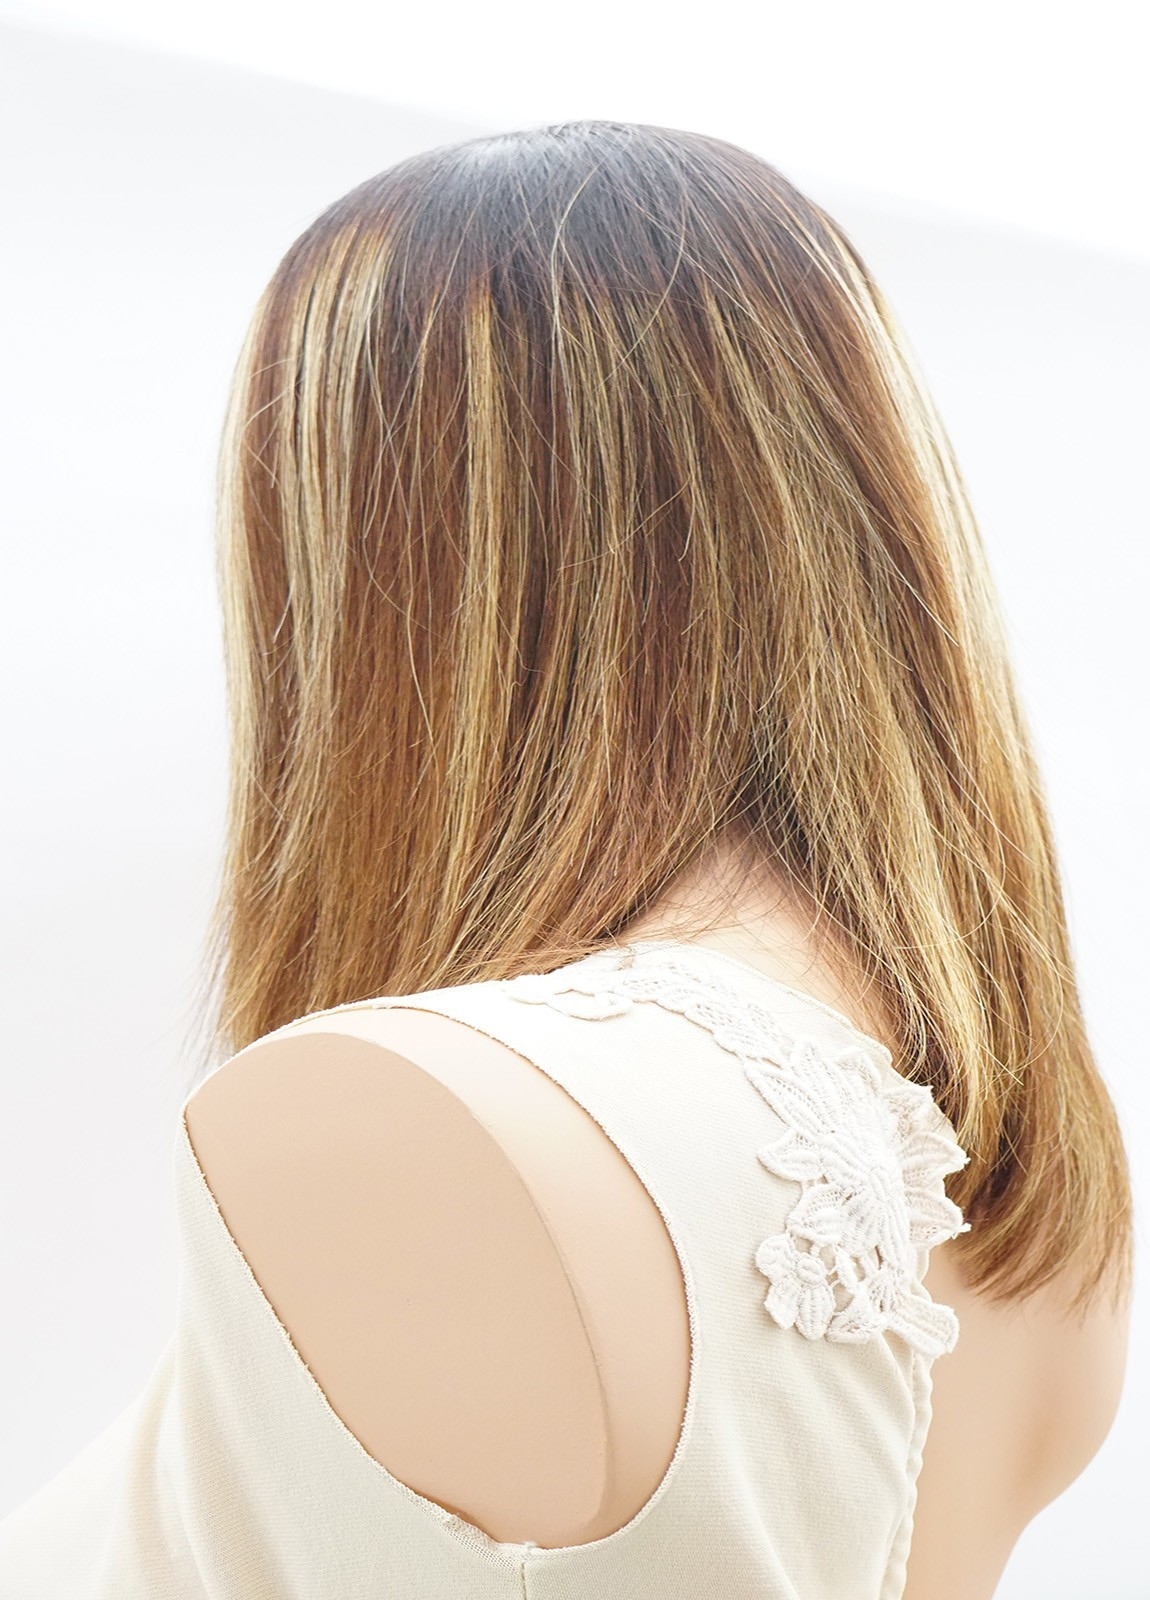 Realistic Wigs for Cancer Patients